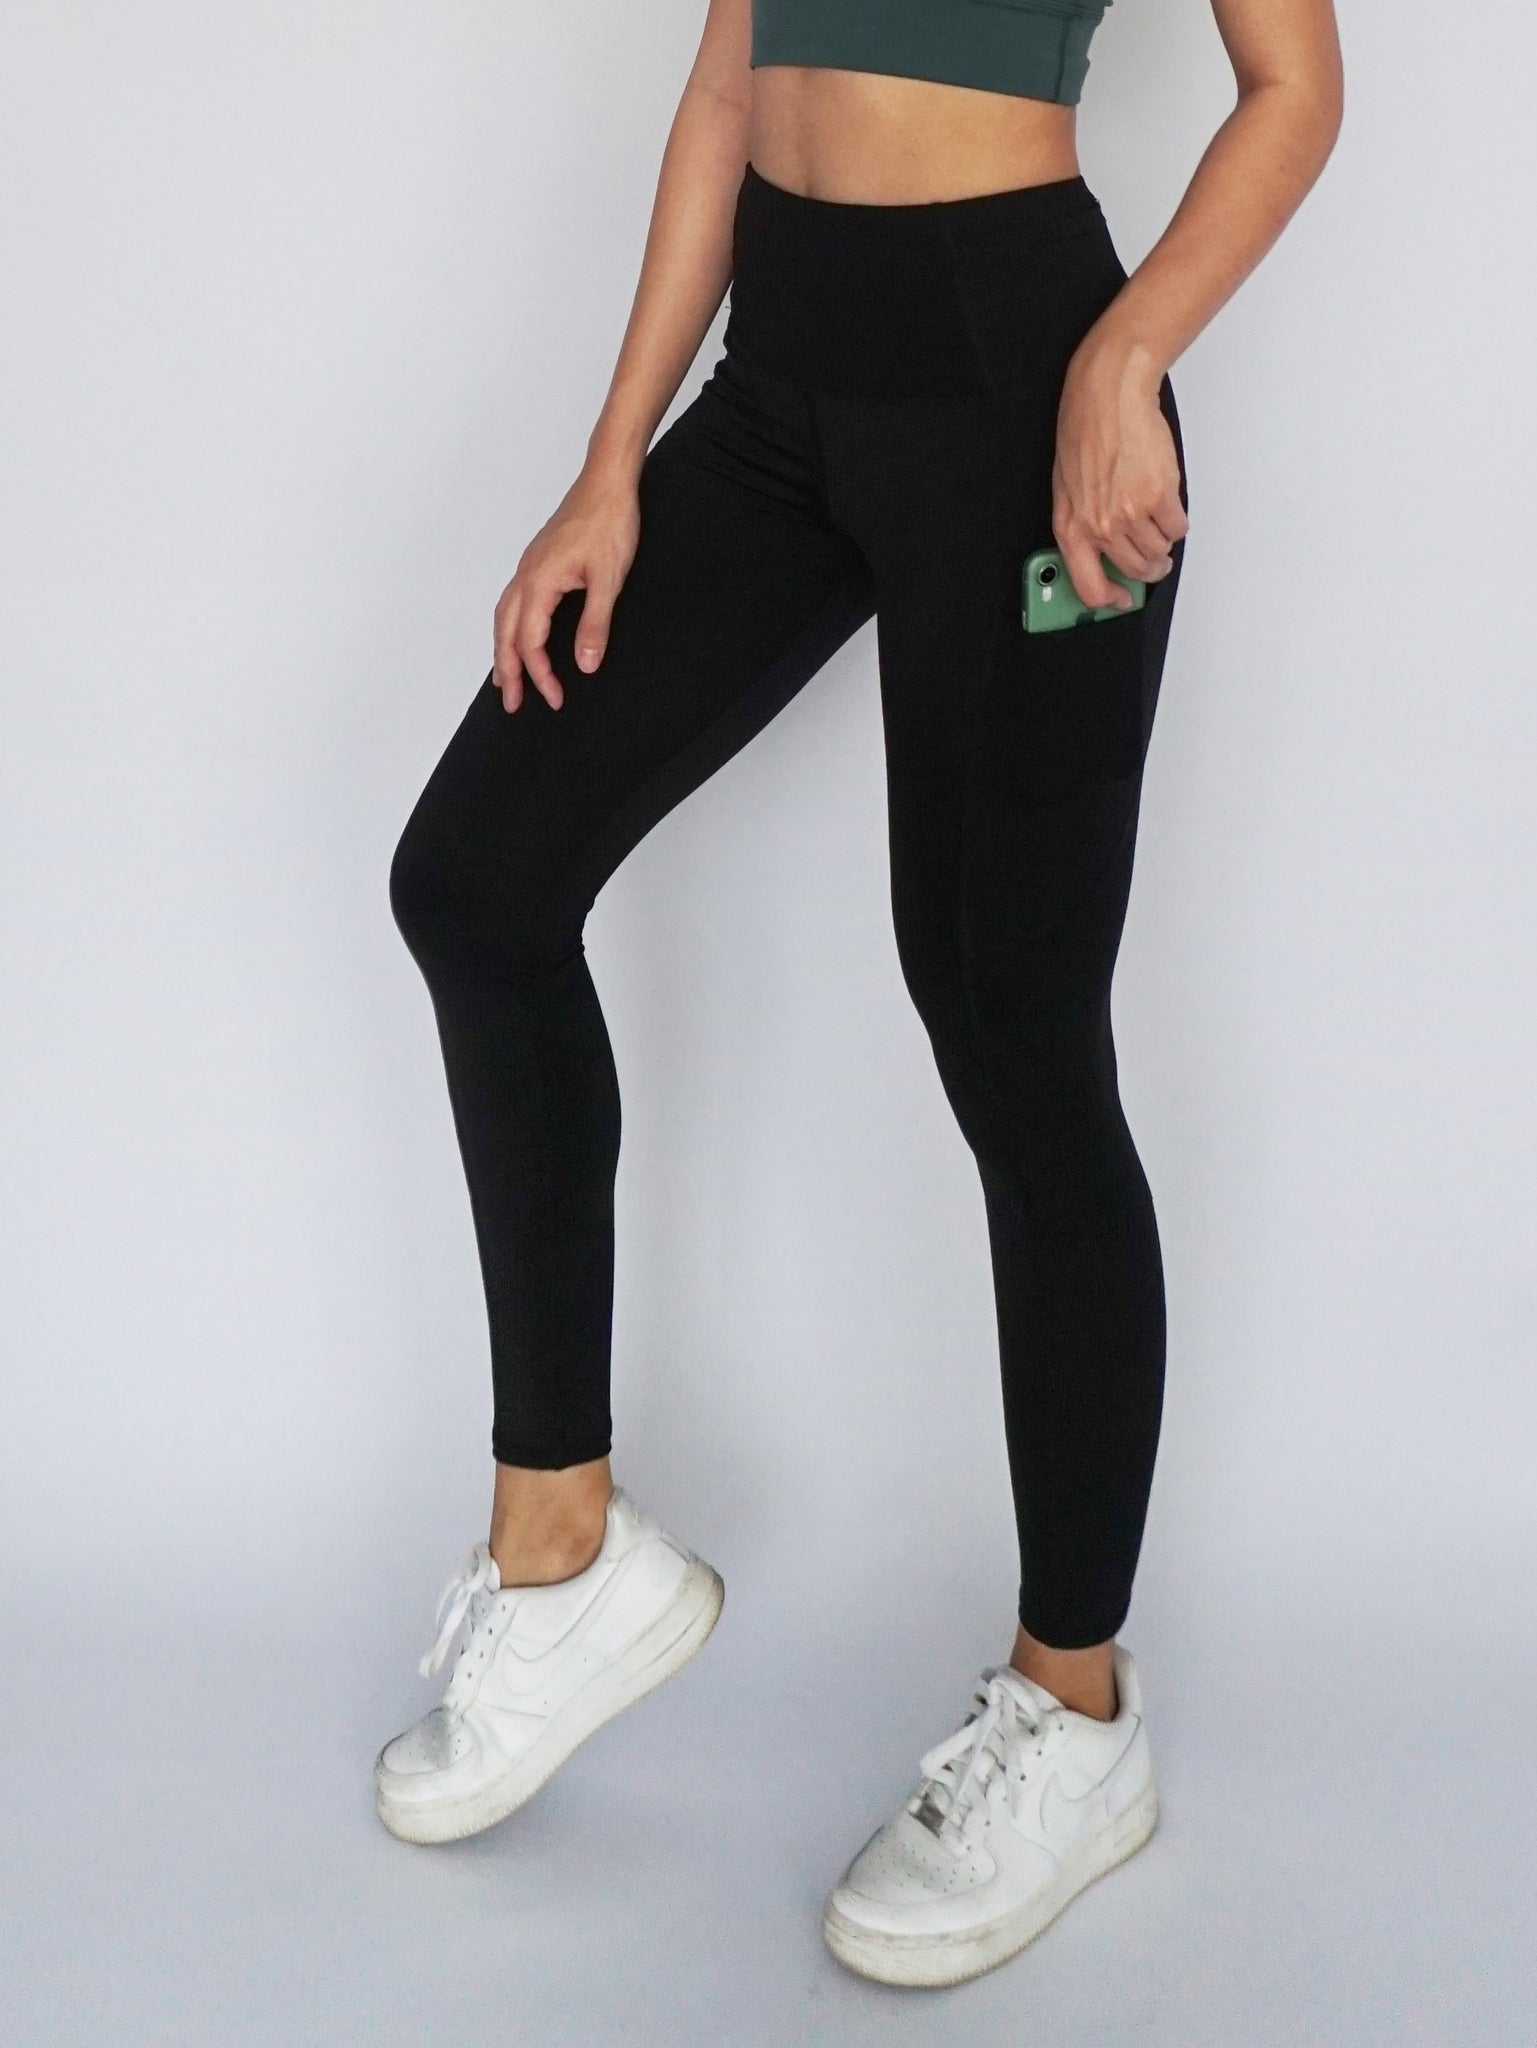 Stride Legging- BLACK - Banana Fighter